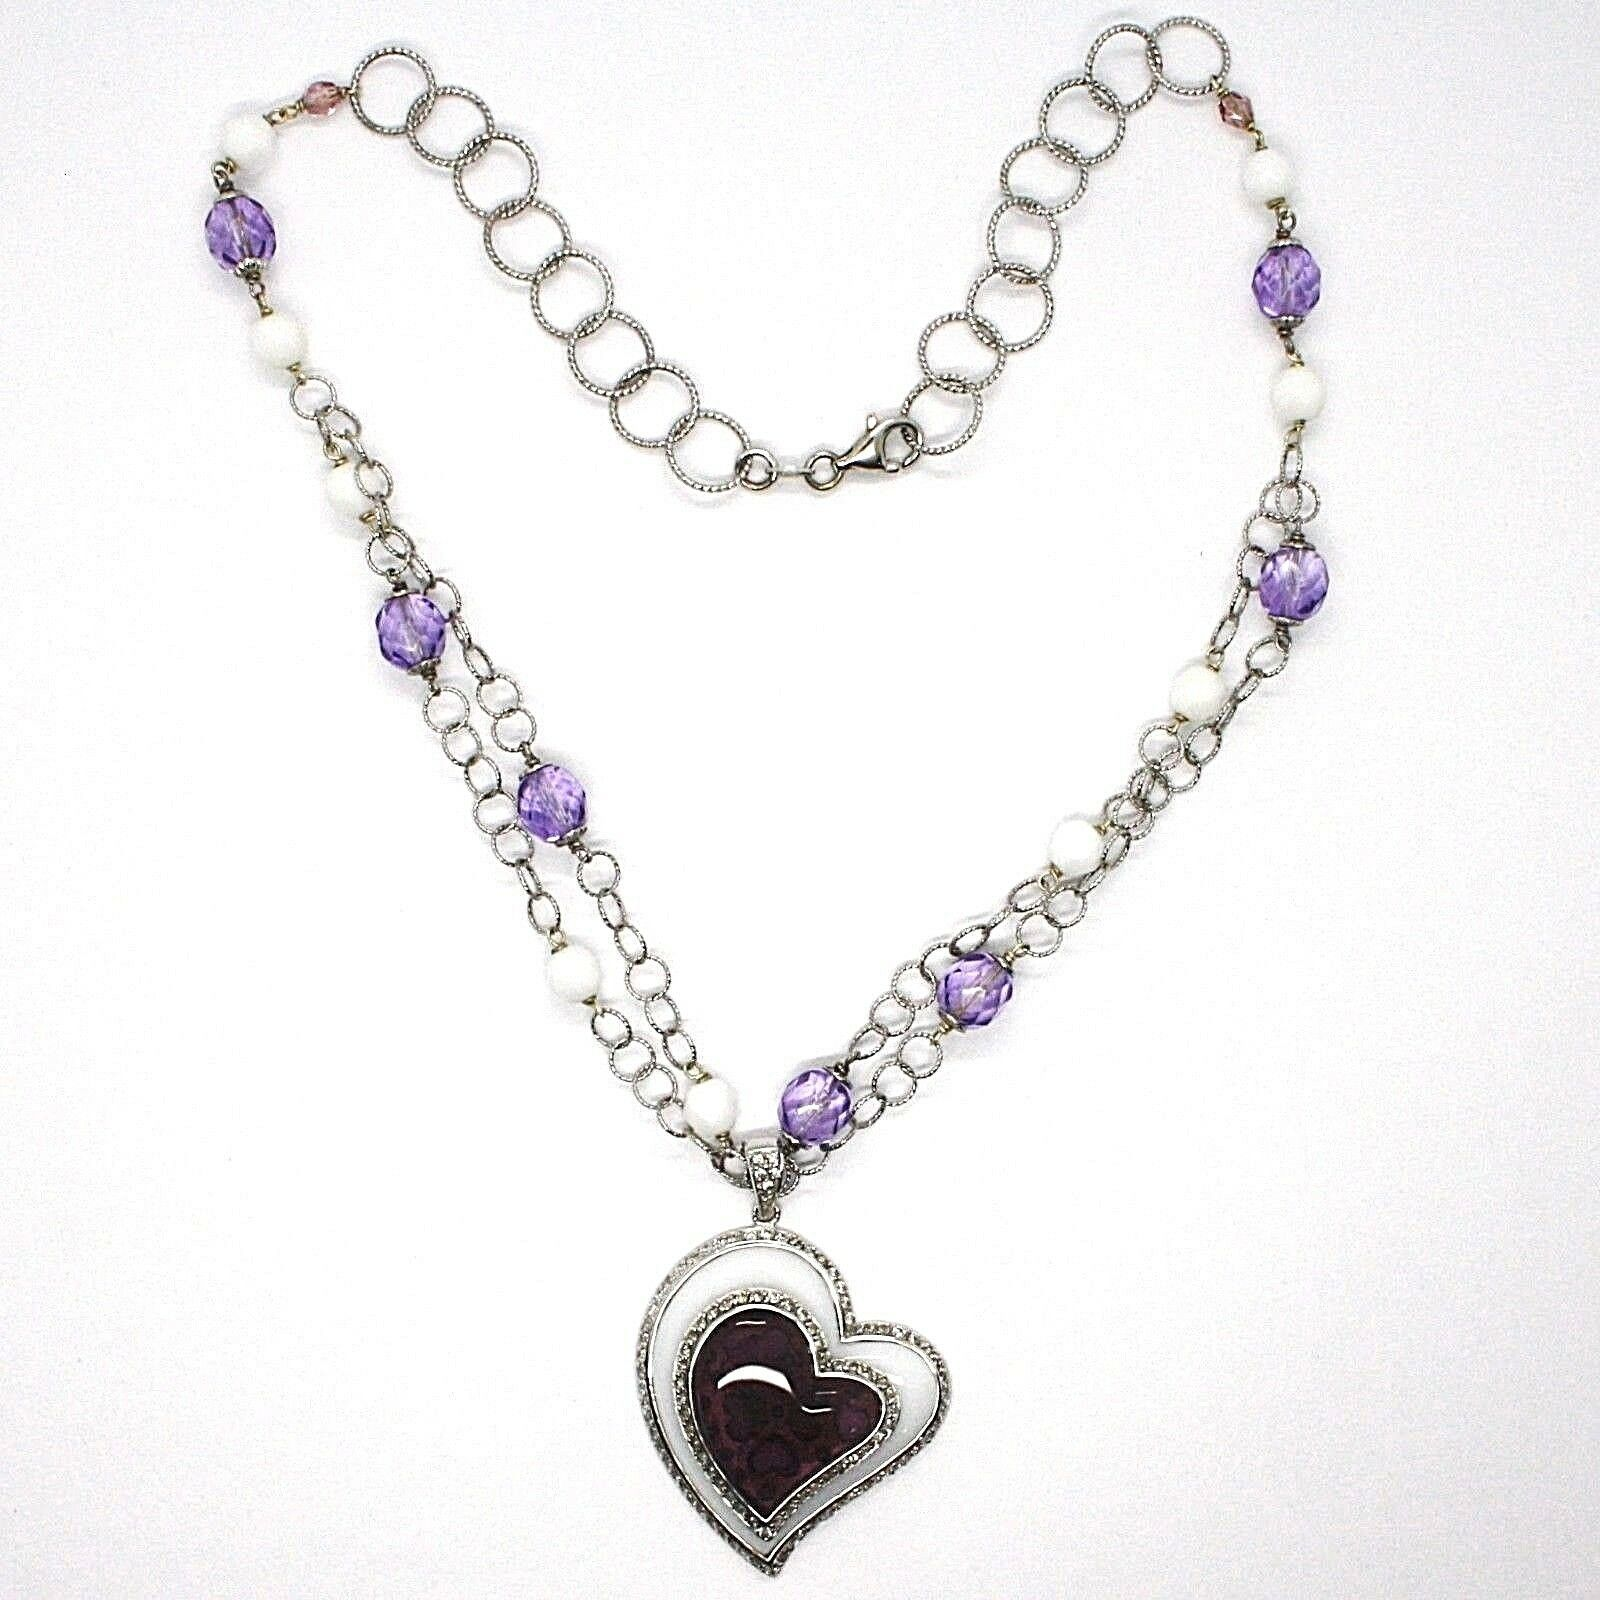 Necklace Silver 925, Amethyst, Agate White, Heart Pendant, Chain Two Row image 2